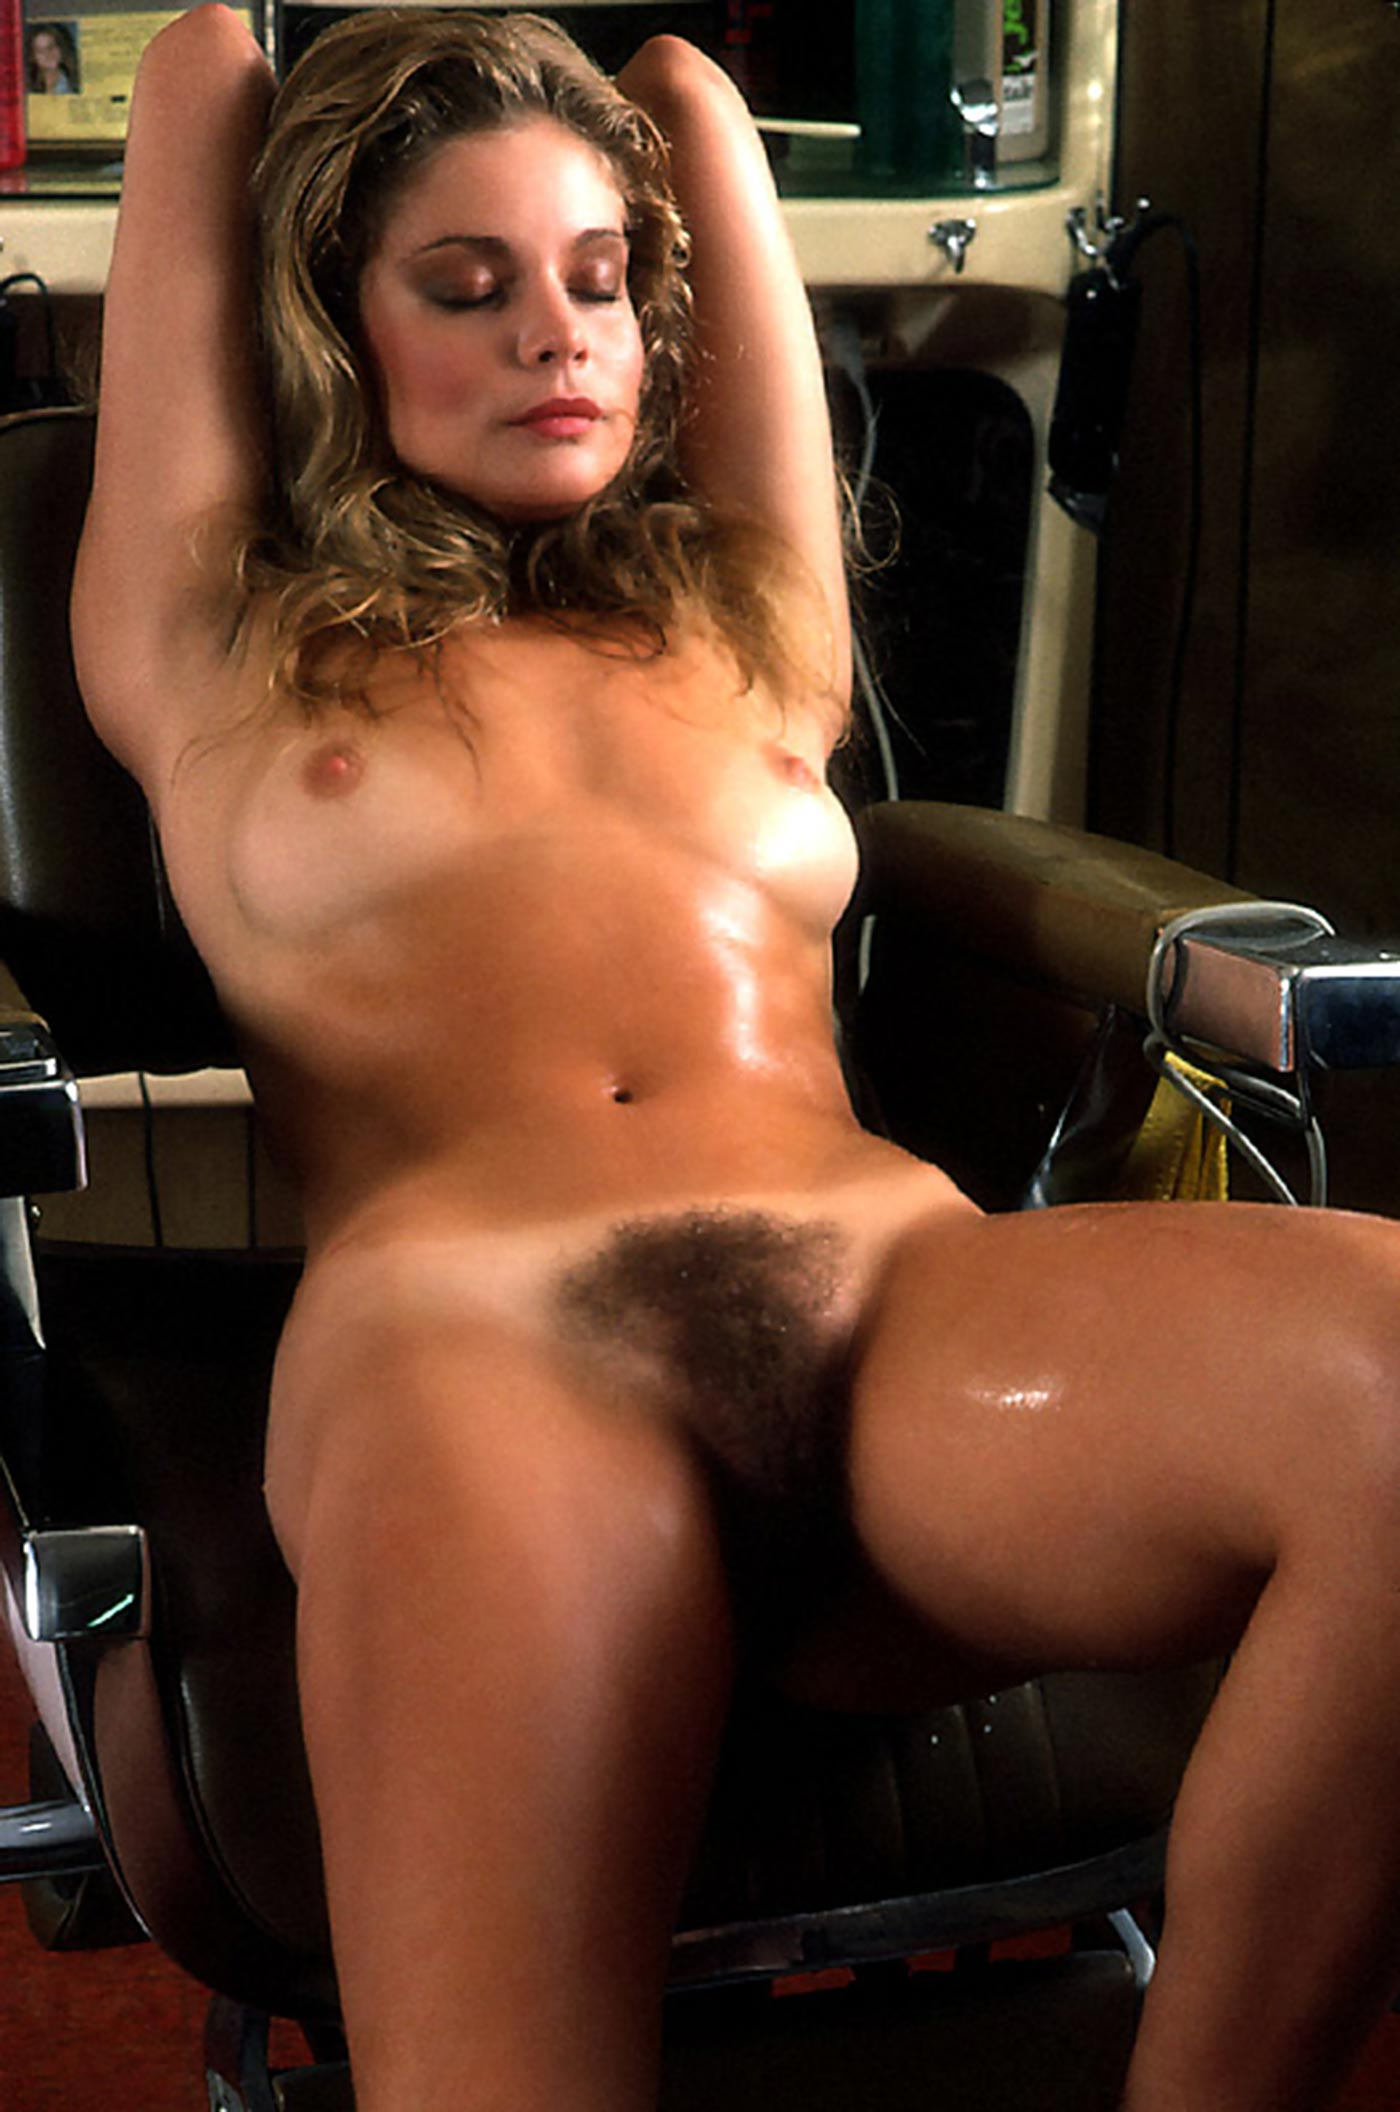 hot naked people doing missionary